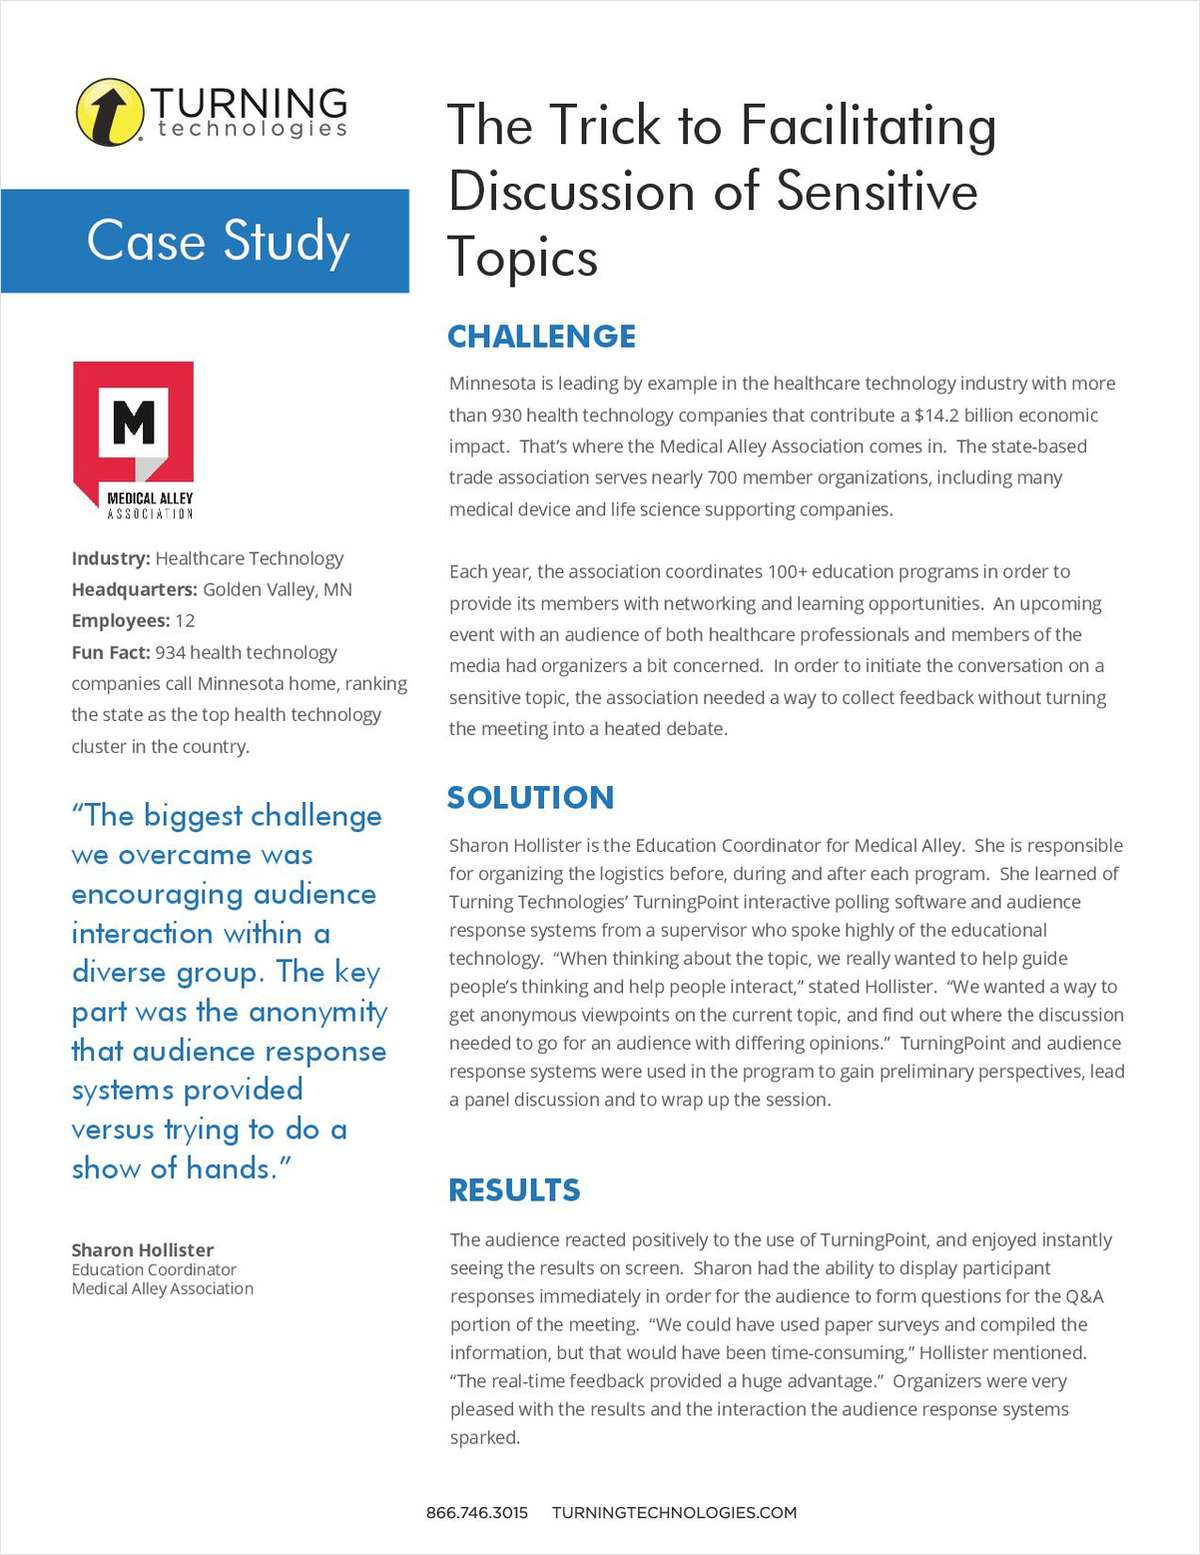 The Trick to Facilitating Discussion of Sensitive Topics